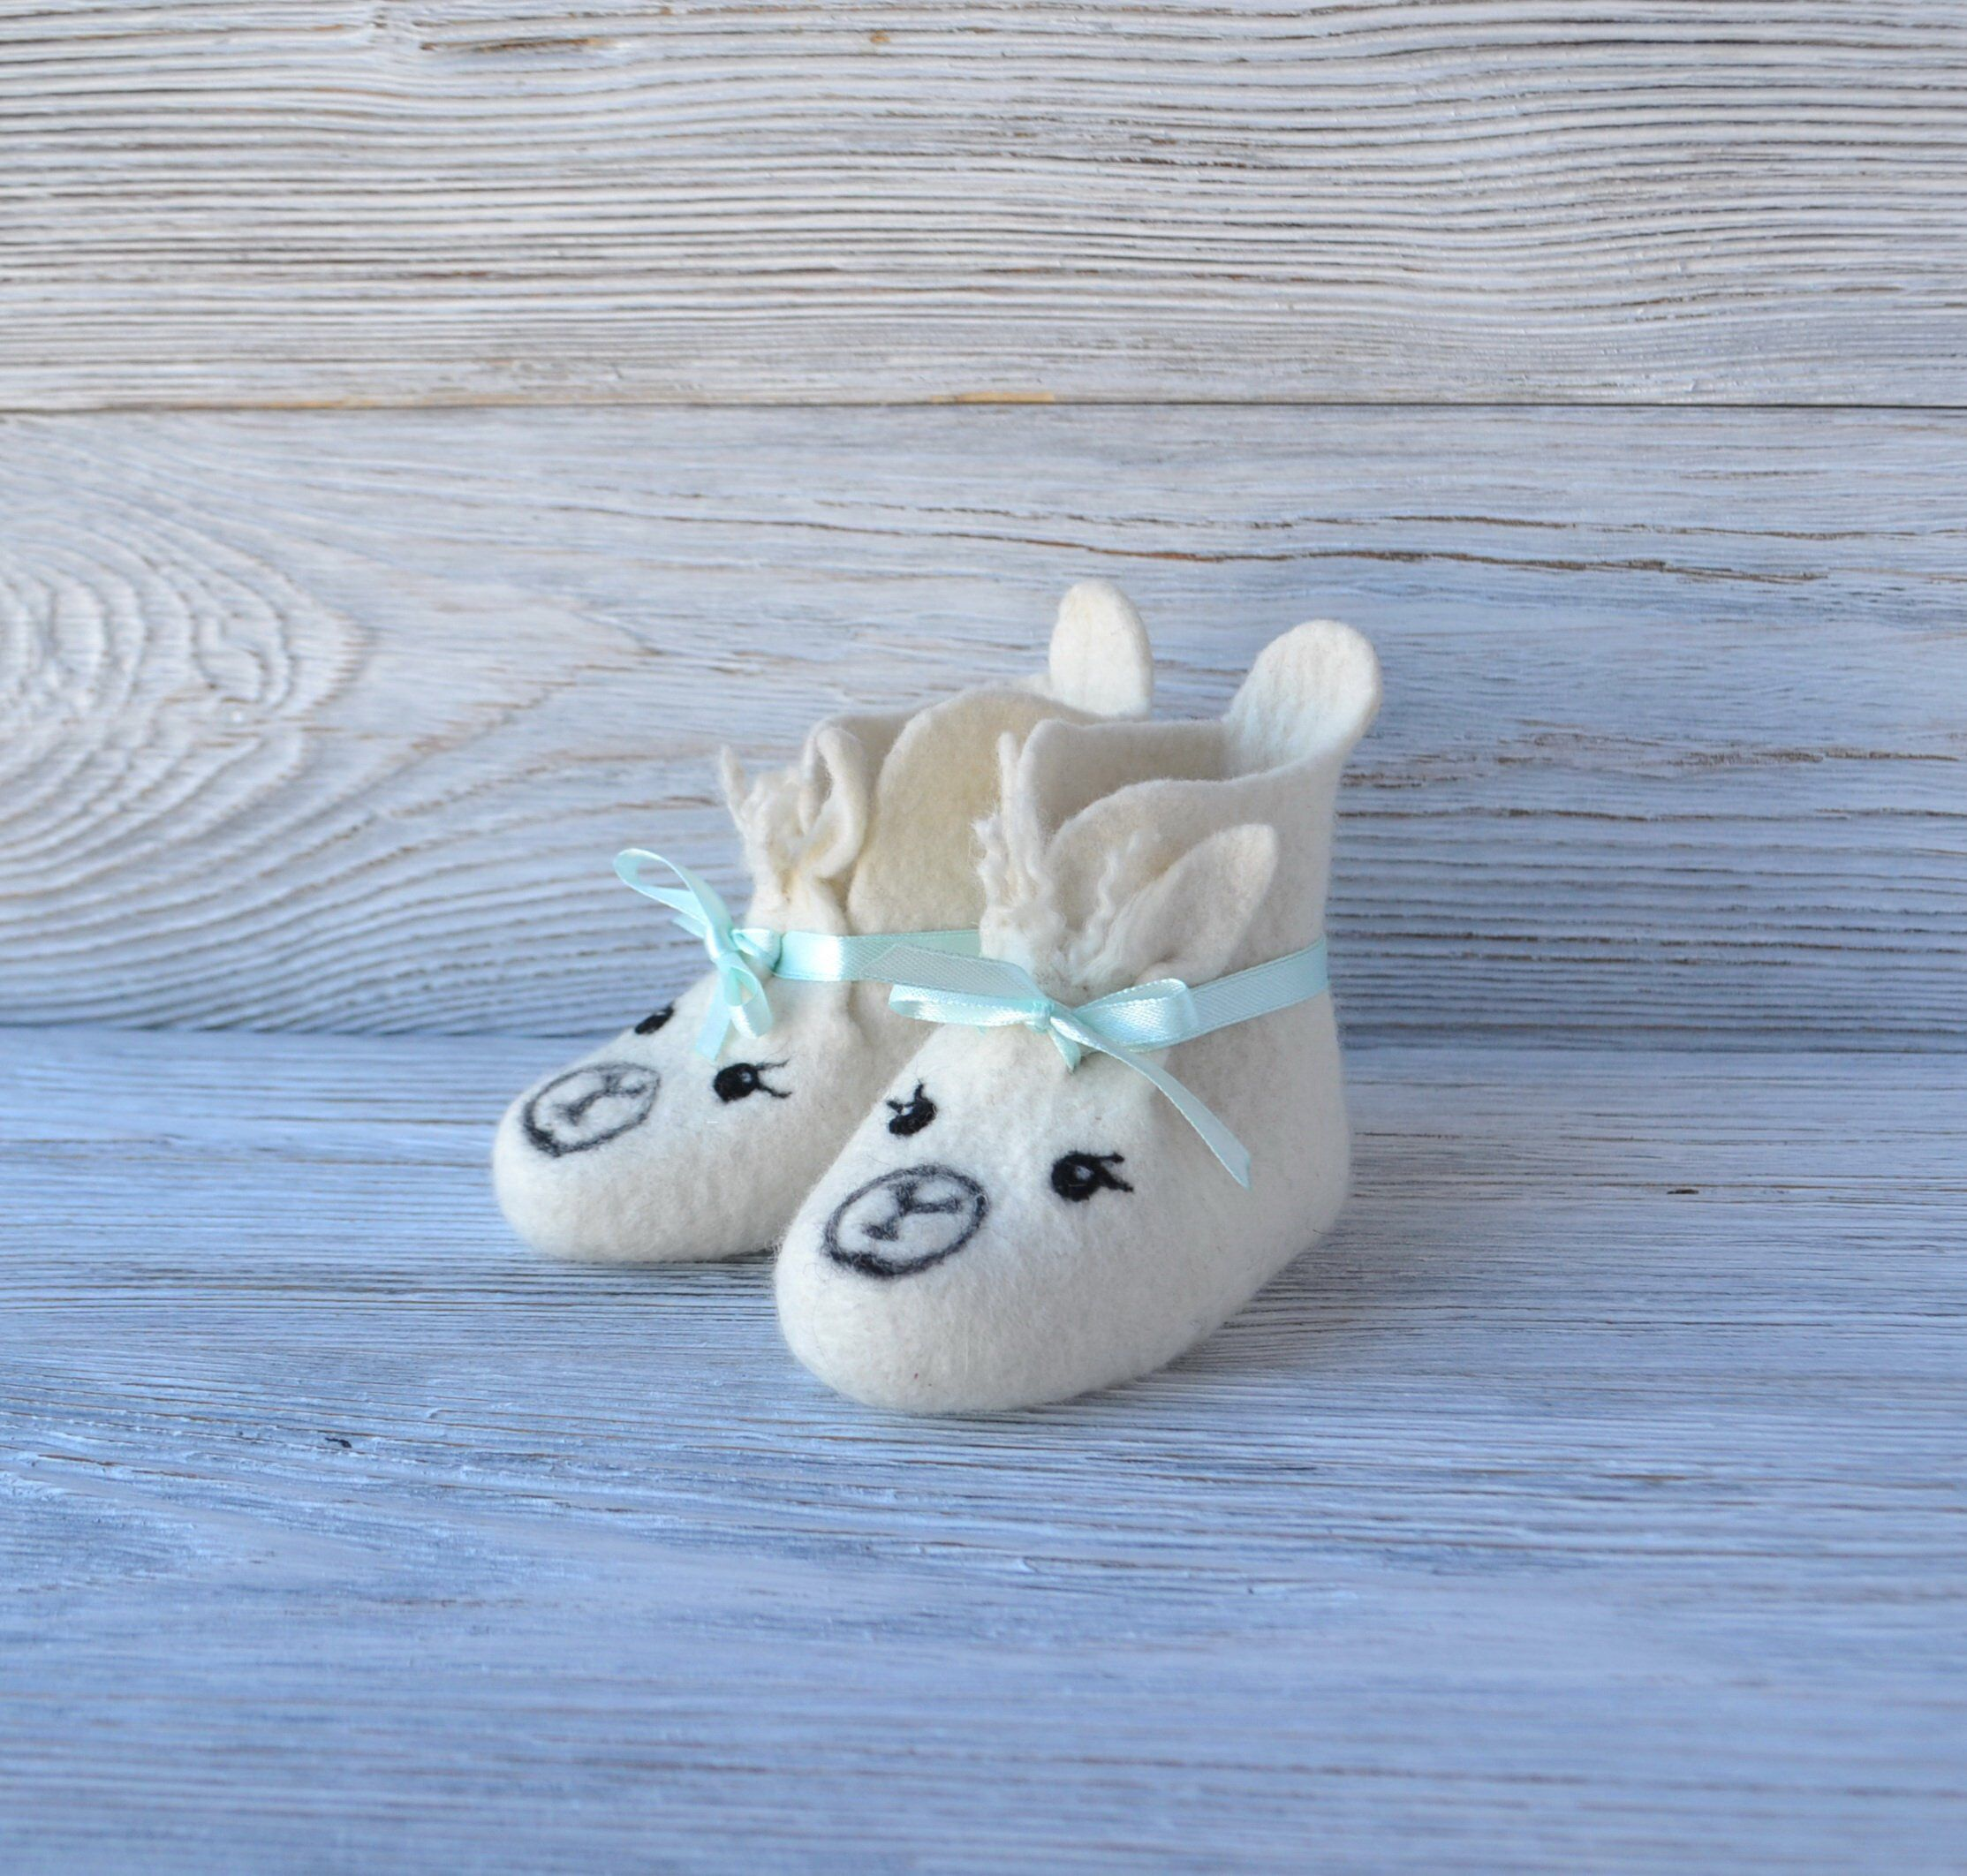 f0e91f9cd97a9 Excited to share the latest addition to my #etsy shop: White llama ...